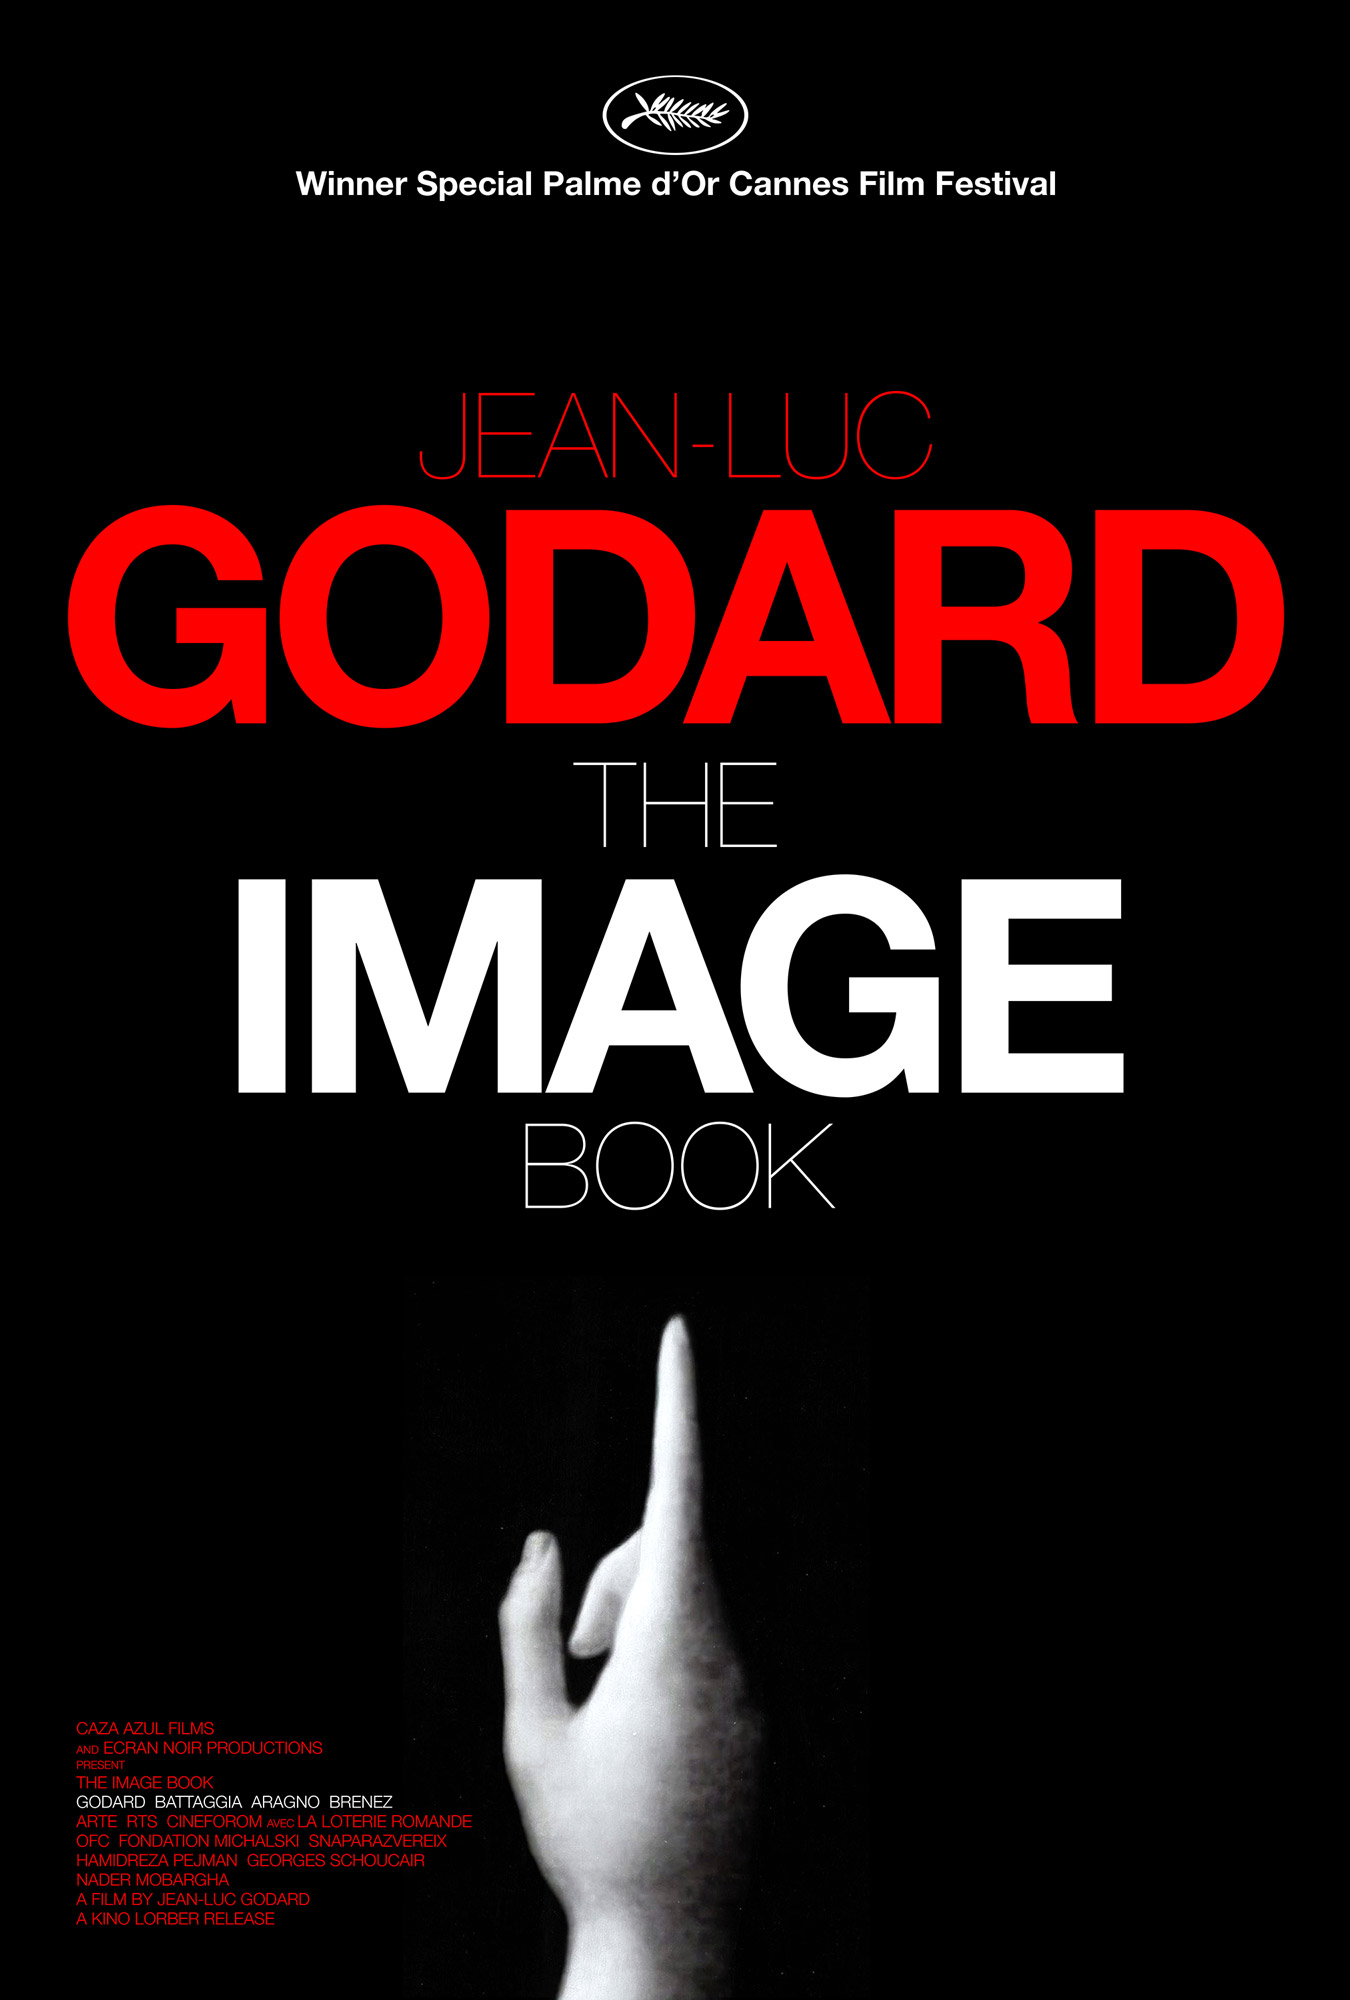 The Image Book 2018 Imdb